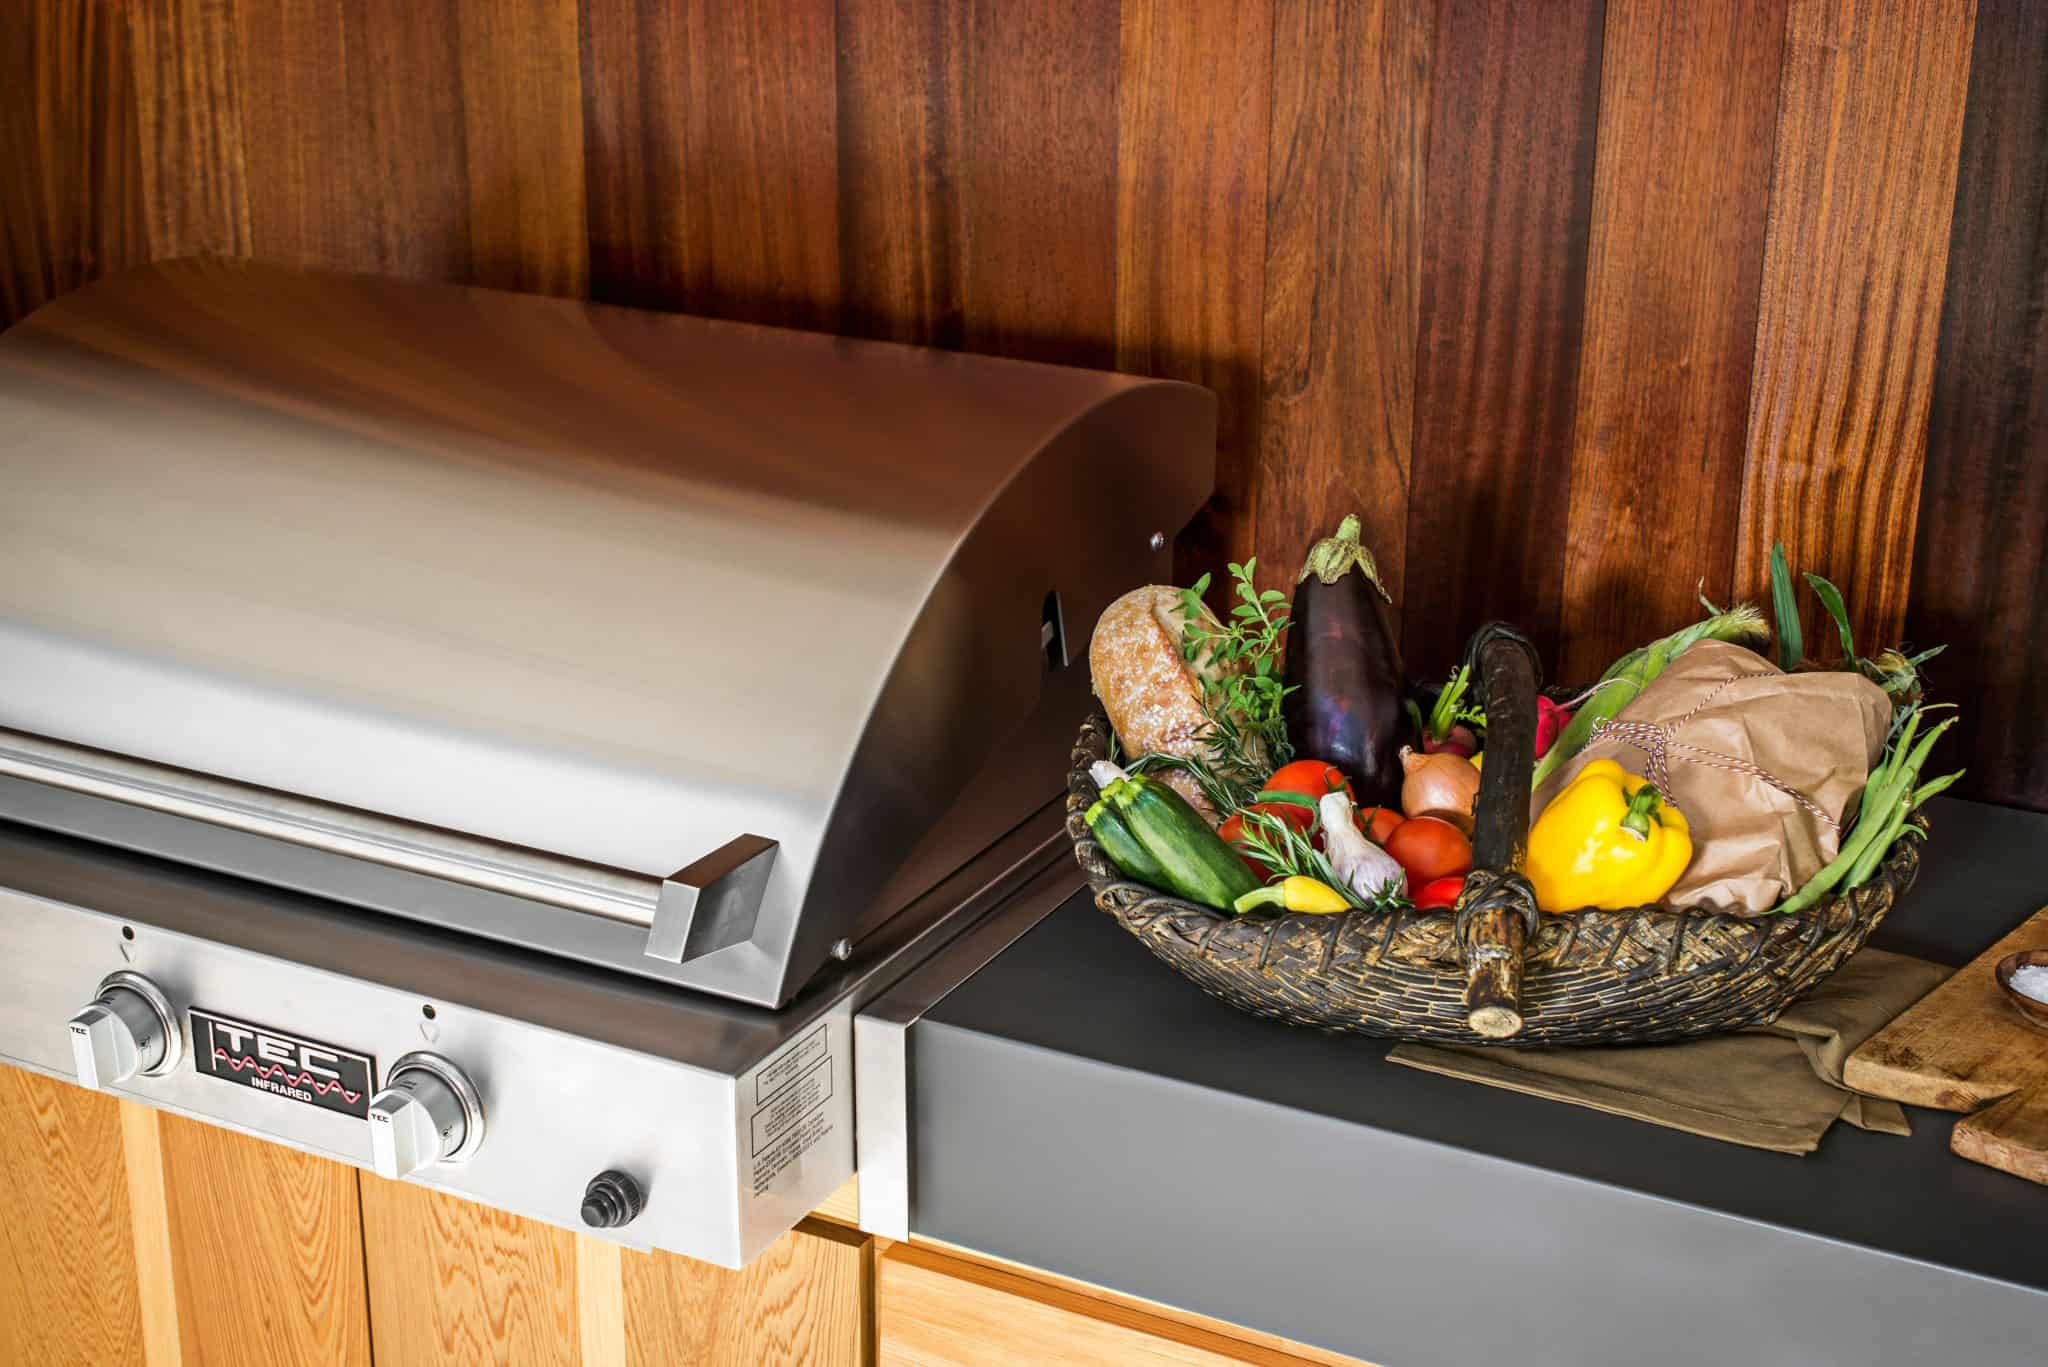 Food and lifestyle photo shoot in Columbia, South Carolina at the Best home for Rawle Murdy Associates Inc. and their client TEC Grills by photographer Stephen Stinson with art director Kate Daughtry; All Photos © Stephen Stinson 2014;